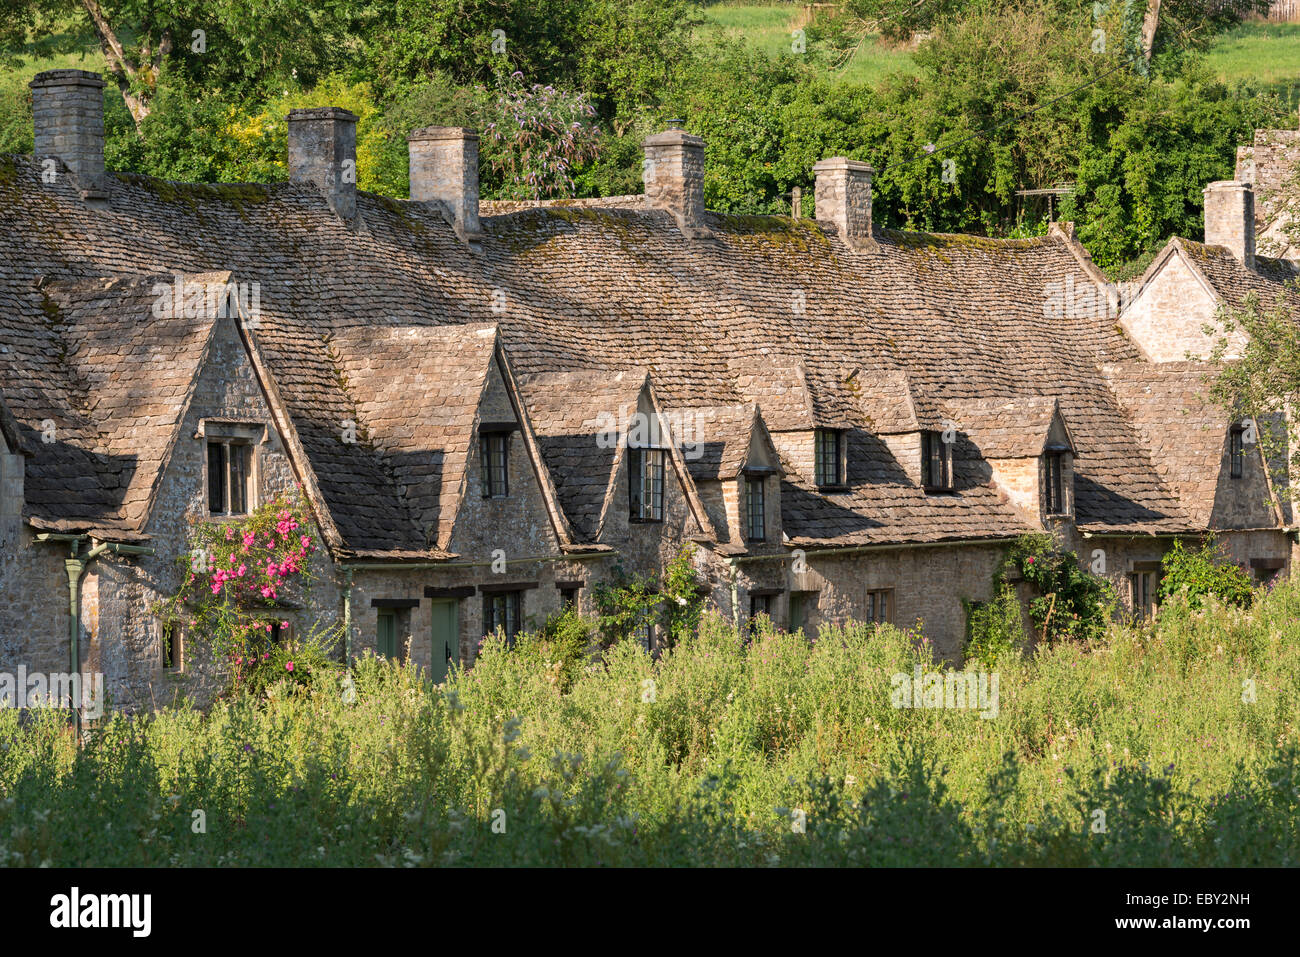 Pretty cottages at Arlington Row in the Cotswolds village of Bibury, Gloucestershire, England. Summer (July) 2014. - Stock Image